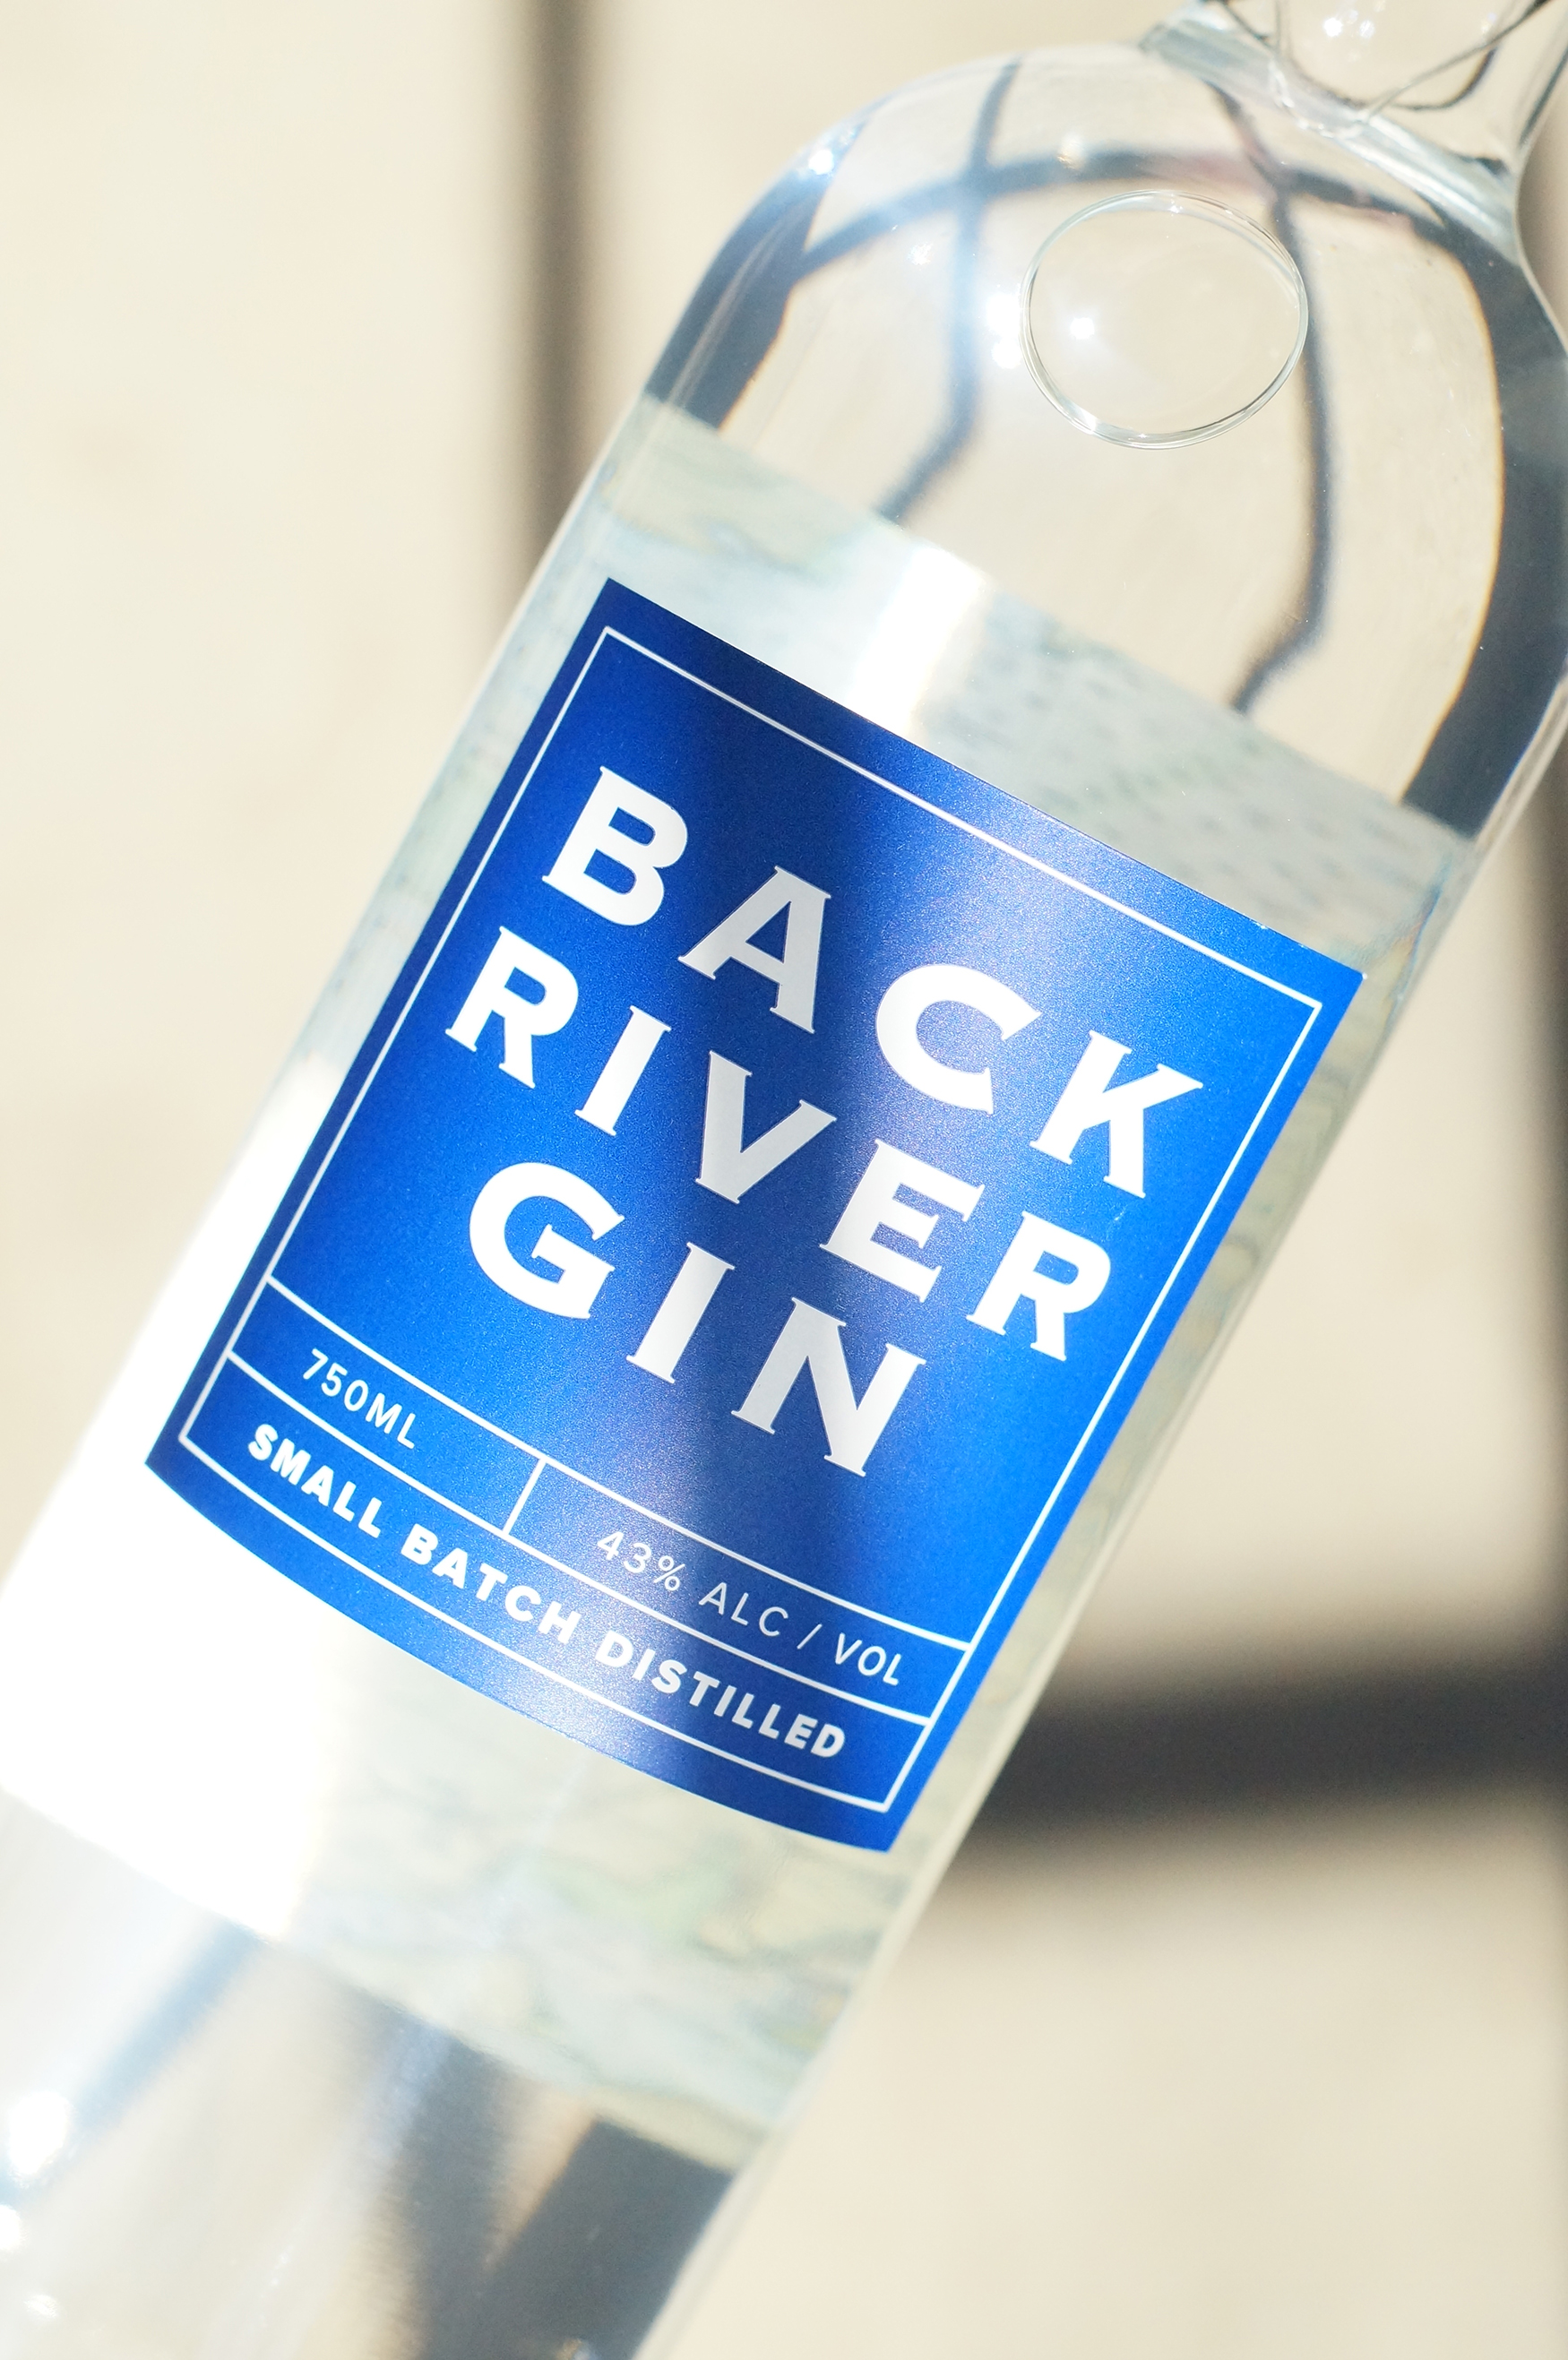 Back River Gin - Gin made in the London tradition with a Maine twist: blueberries. The combination of organic botanicals, Maine blueberries, and sea air give our gin its refreshing taste. Spirit Journal says, 'The aroma's unlike any other gin in the world, and better than a whole slew of them… Finishes ultra-clean, amazingly tart and acidic, yet eye-poppingly fresh.' Wine Enthusiast calls it 'A creative and sophisticated gin.' Come see us and taste a sample of this award winning spirit.TOP 50 SPIRITS Wine EnthusiastMAINE'S BEST GIN DownEast Magazine 2009DOUBLE GOLD/FIVE STARS The Gin Is InSUPERB (95) / Highly RecommendedWine Enthusiast